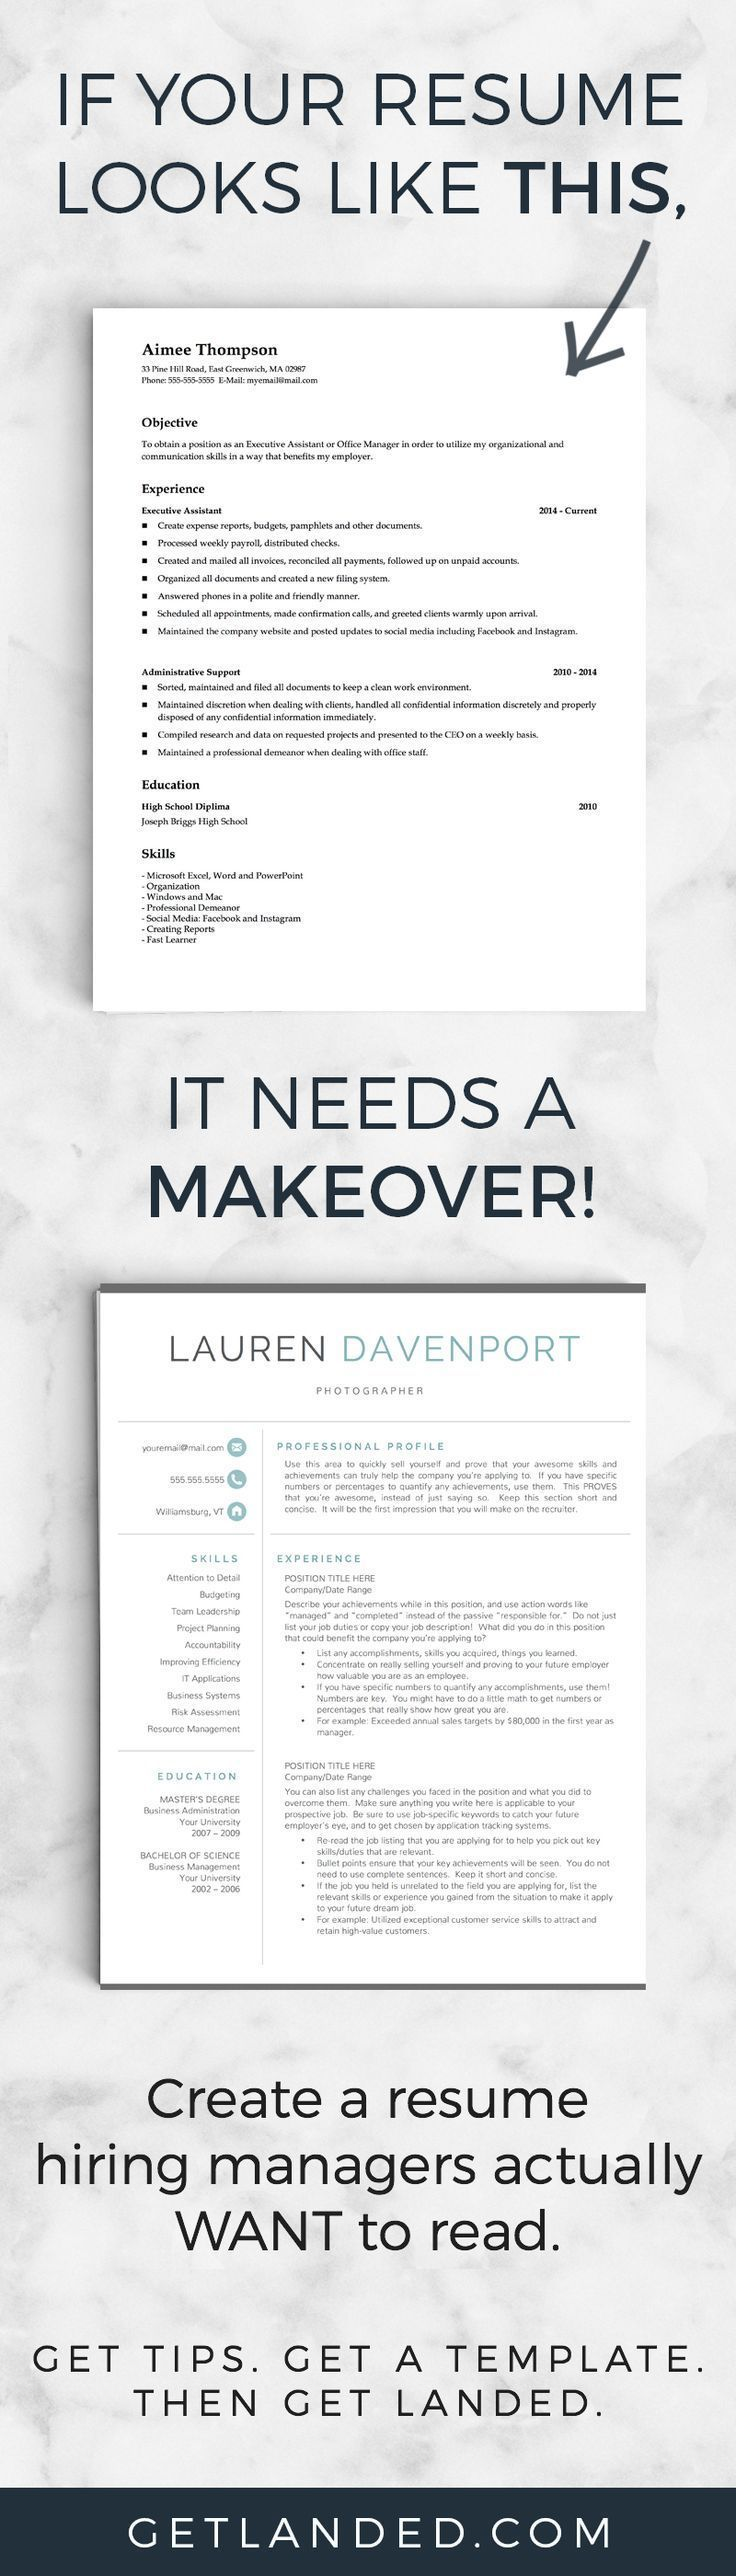 of candidates desperately need a resume makeover get a resume makeover today with a resume template and resume writing tips that will transform your resume